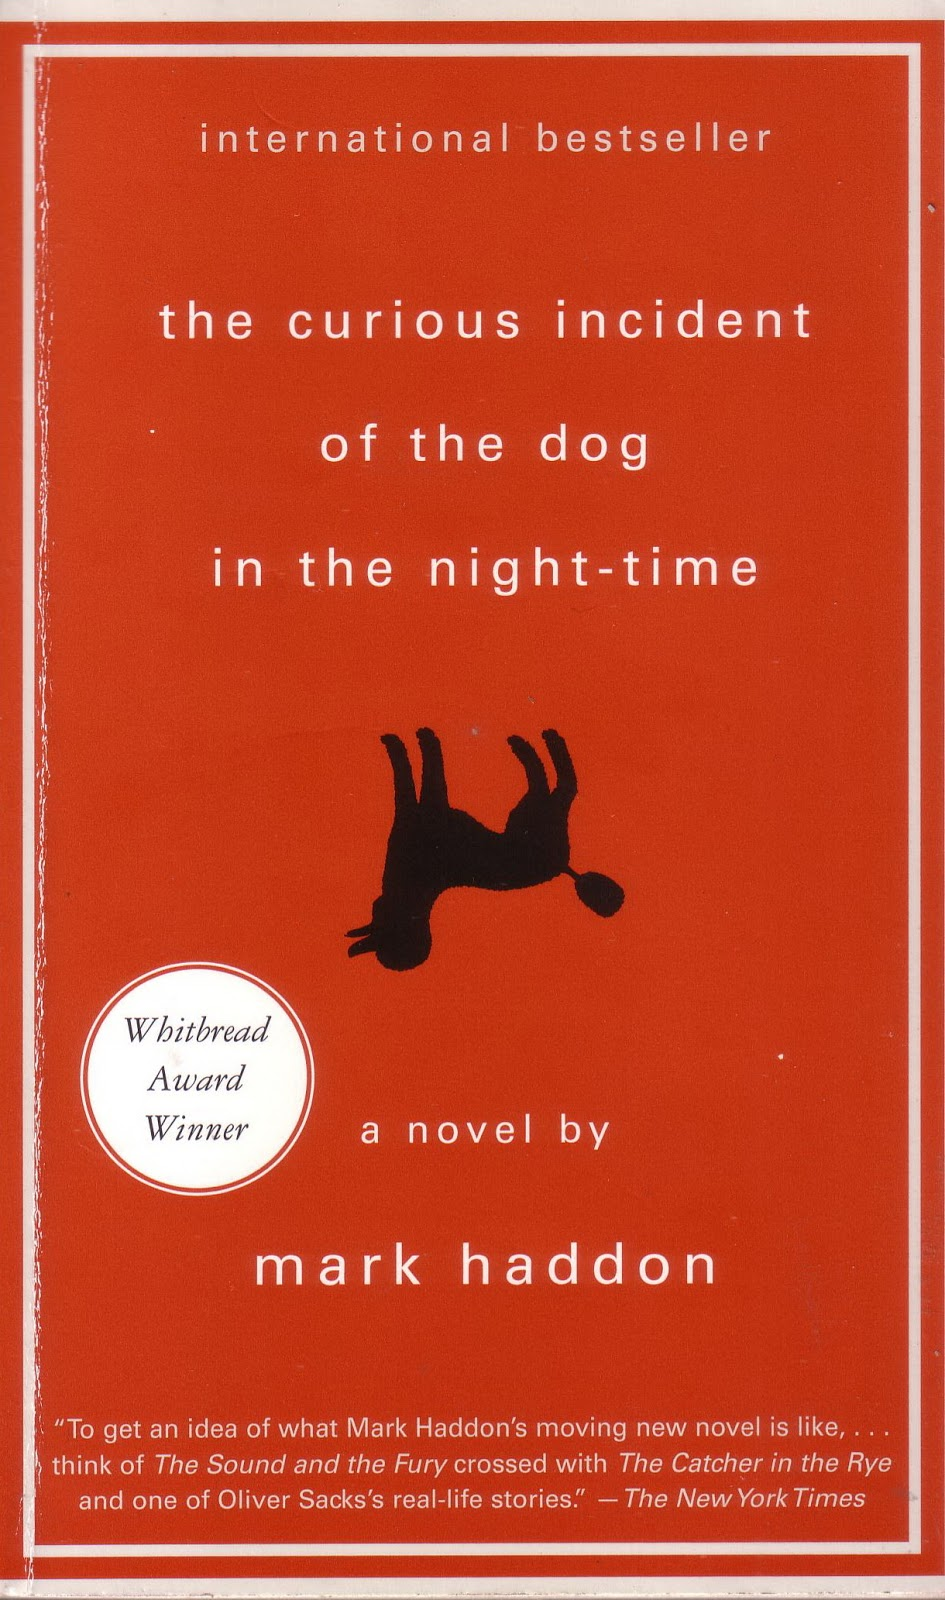 The curious incident of the dog in the night time monologue